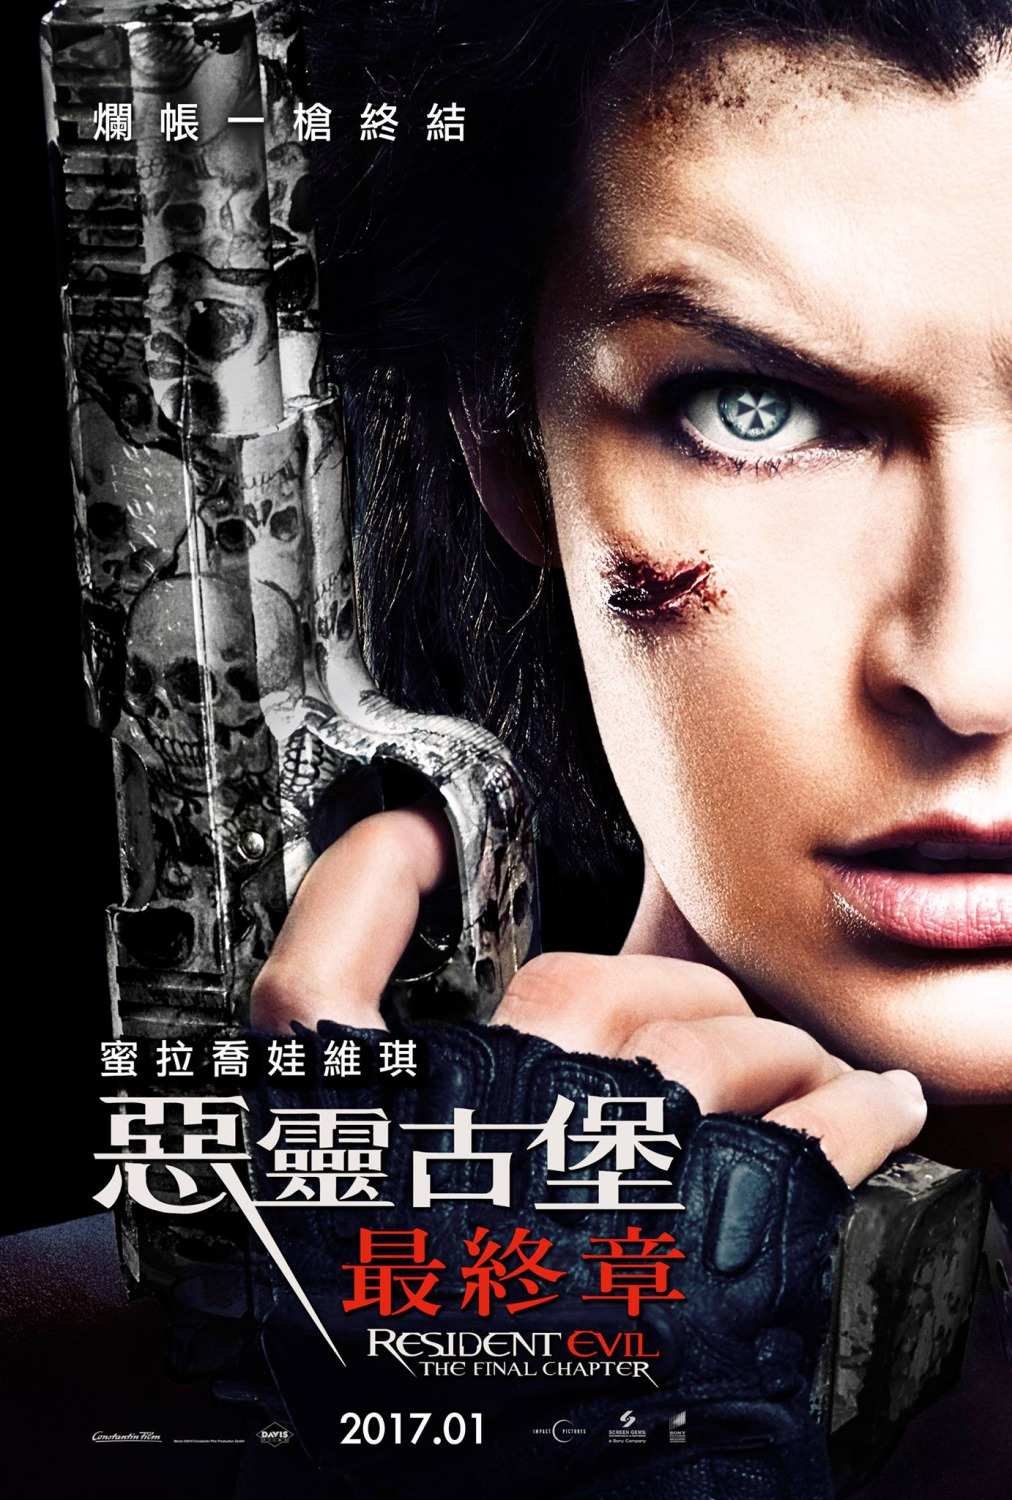 International Resident Evil The Final Chapter Poster Covered In